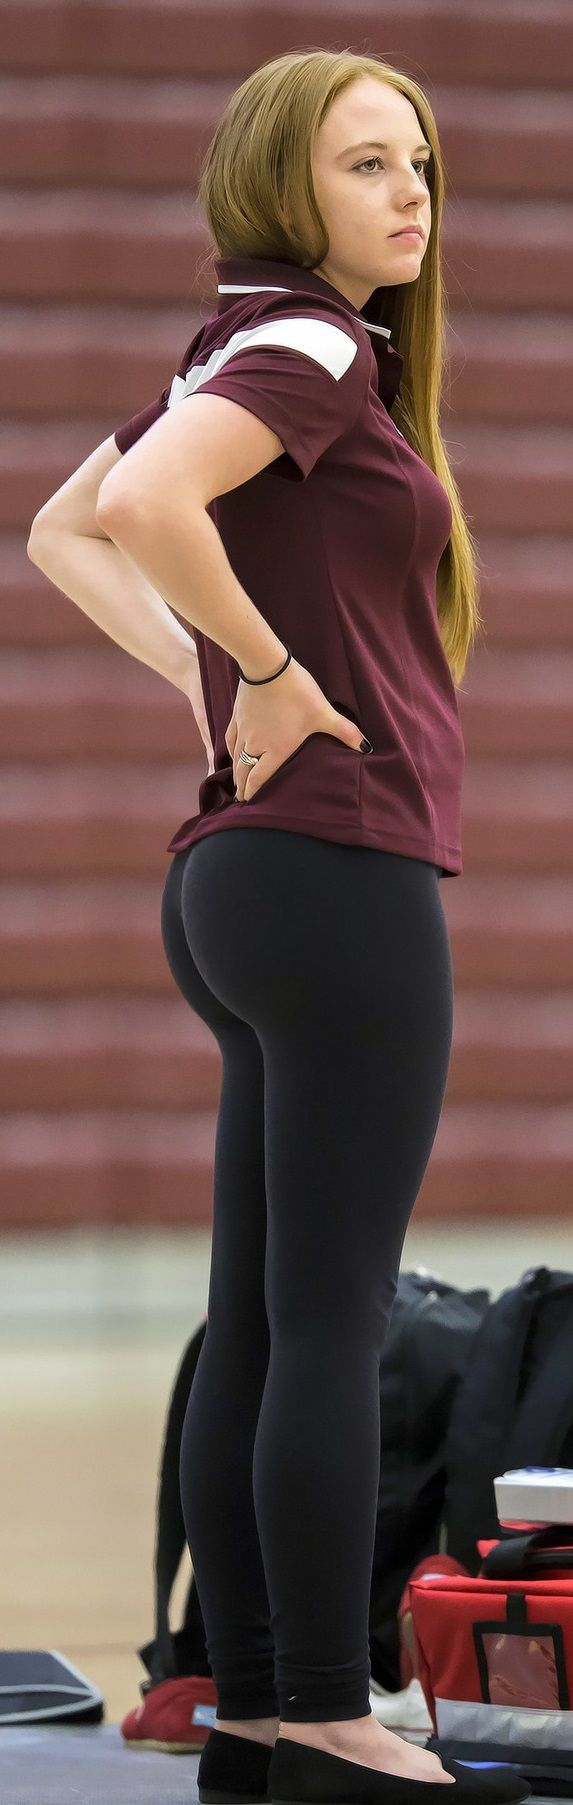 College Teen Ass